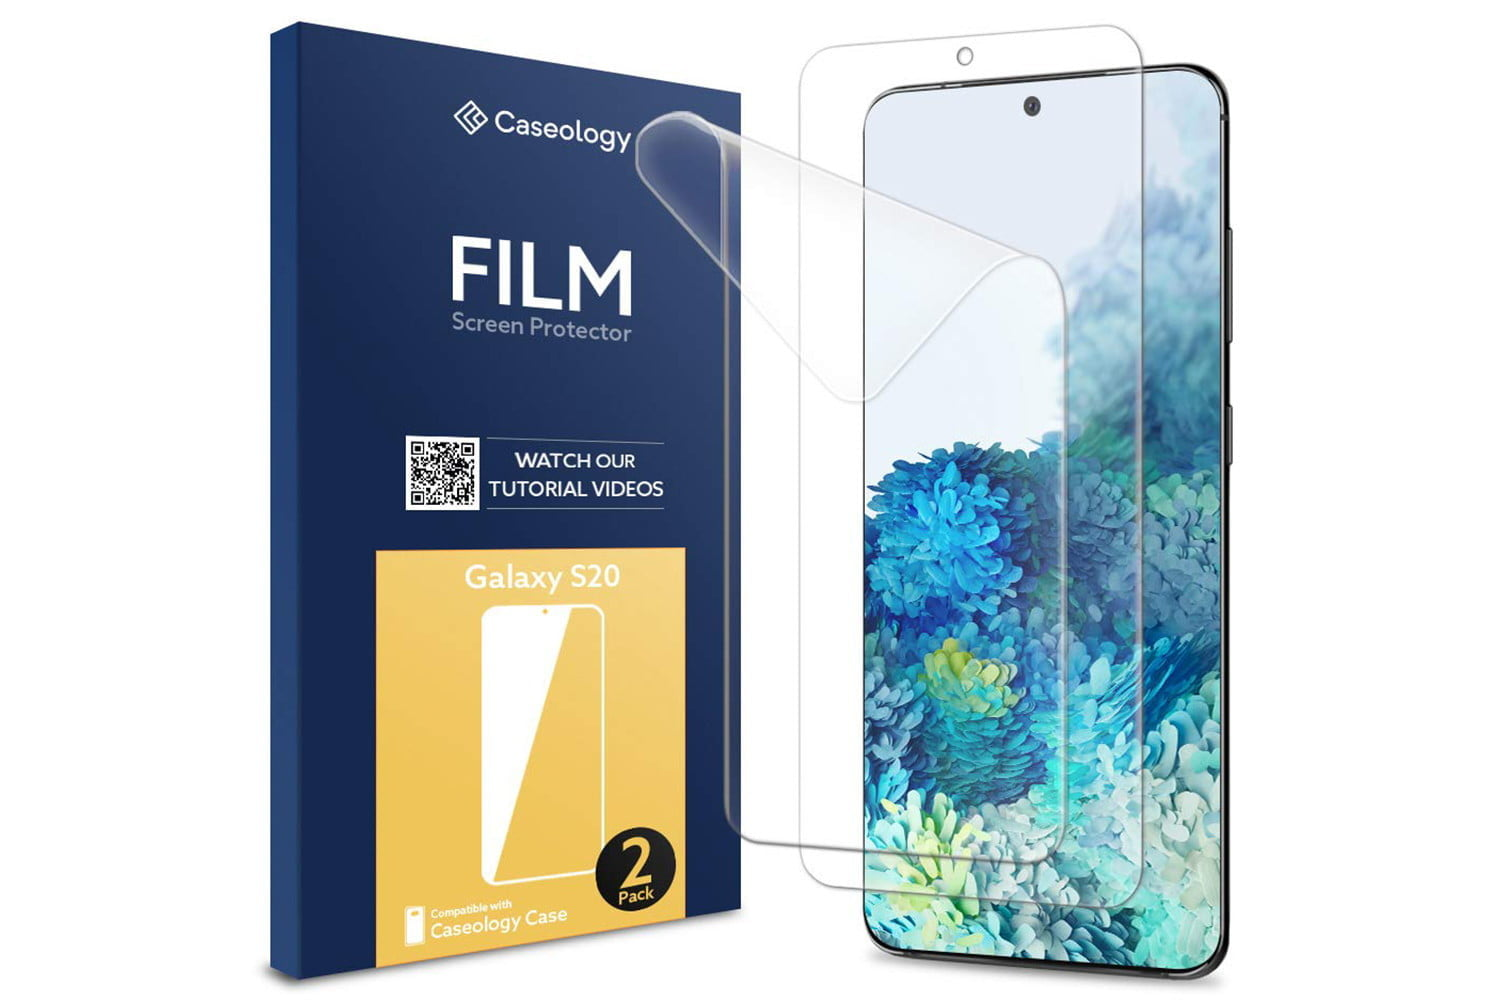 Caseology Film, Samsung Galaxy S20 screen protector